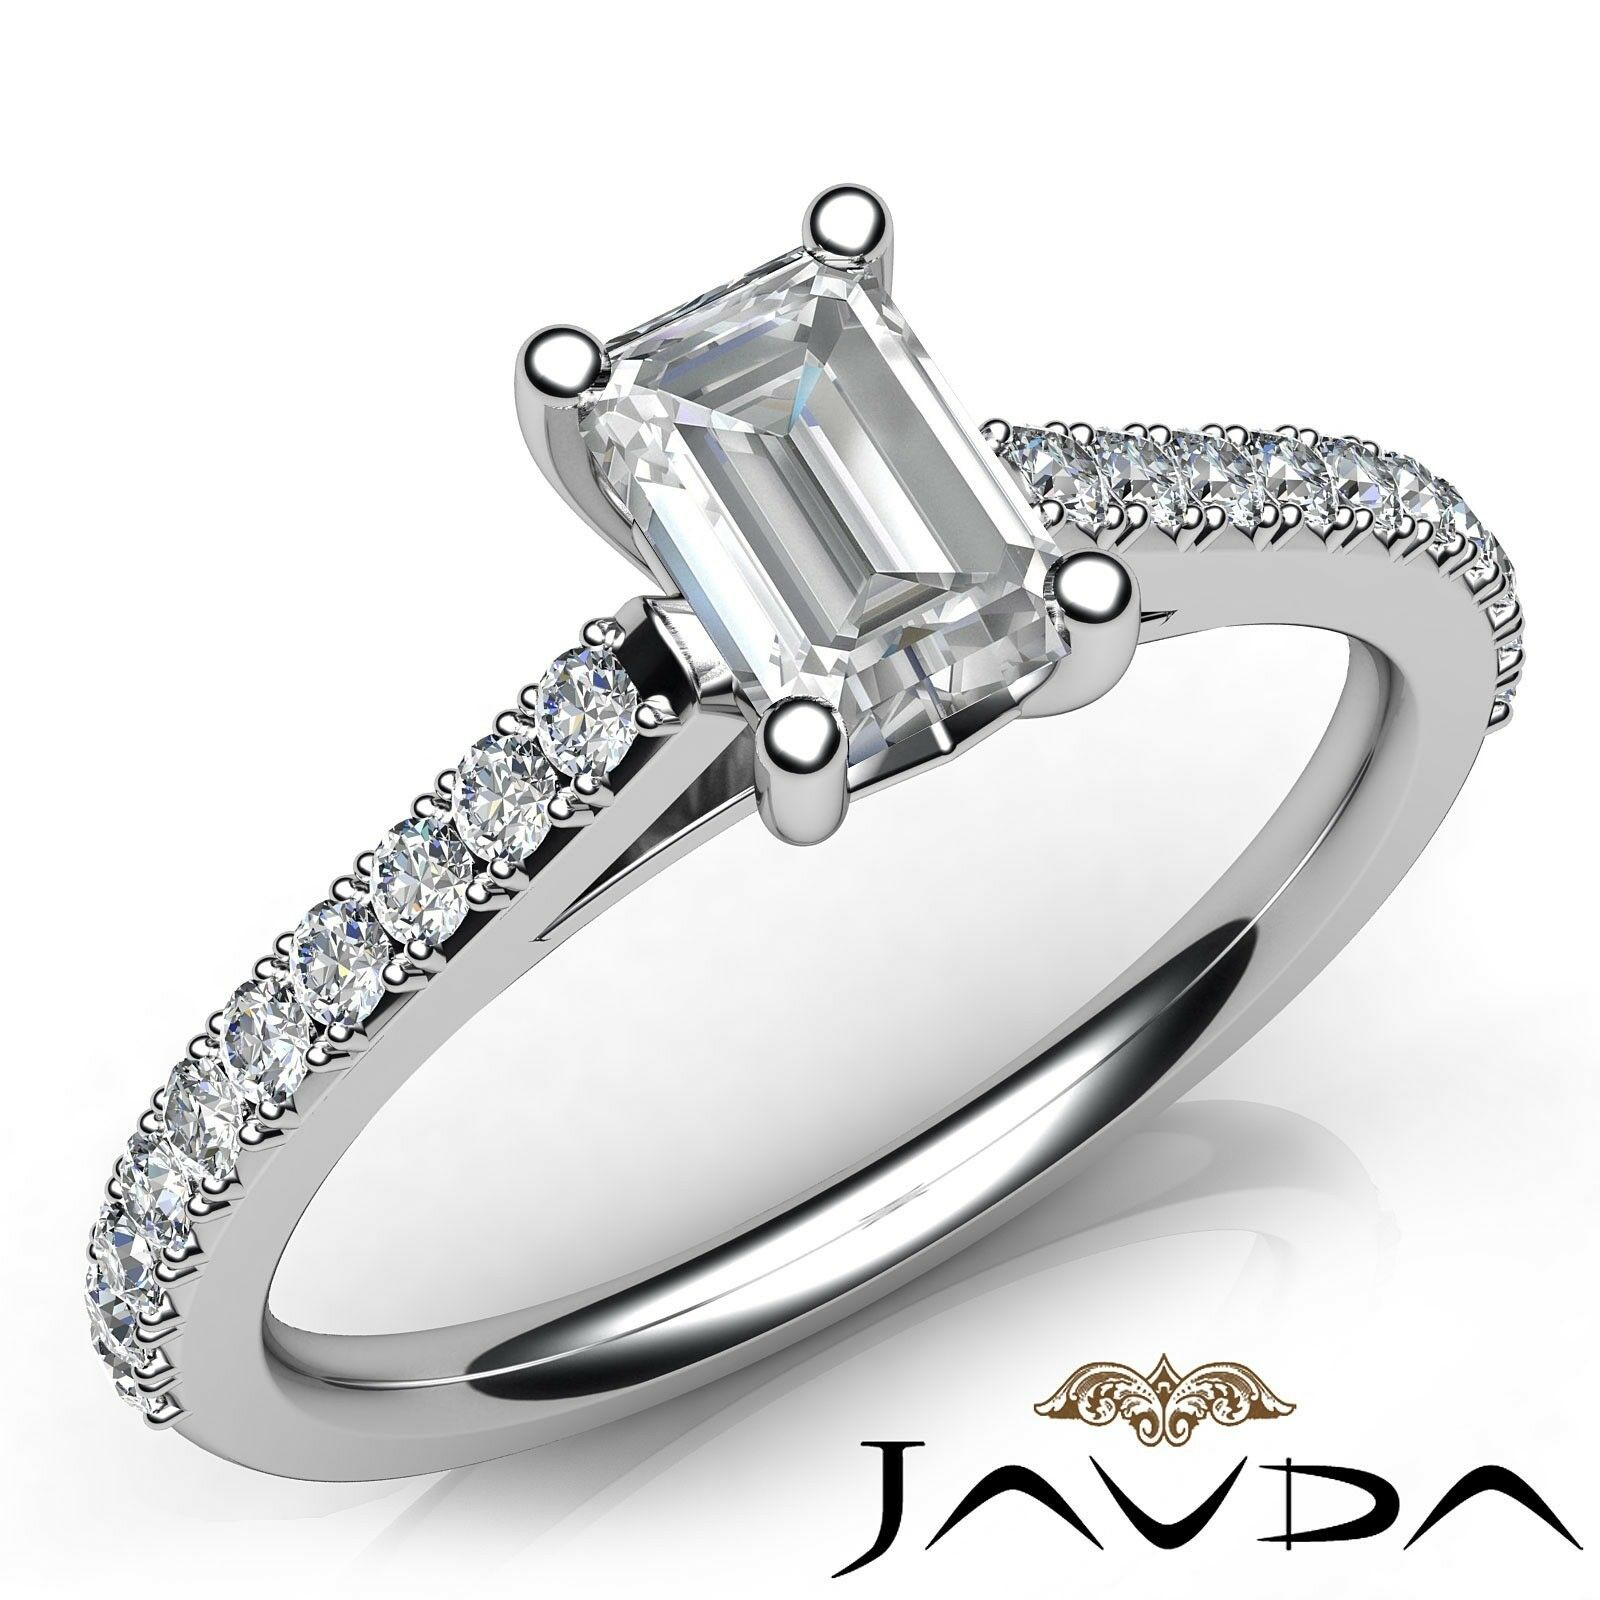 0.8ctw Classic Prong Set Emerald Diamond Engagement Javda Ring GIA E-VVS1 W Gold